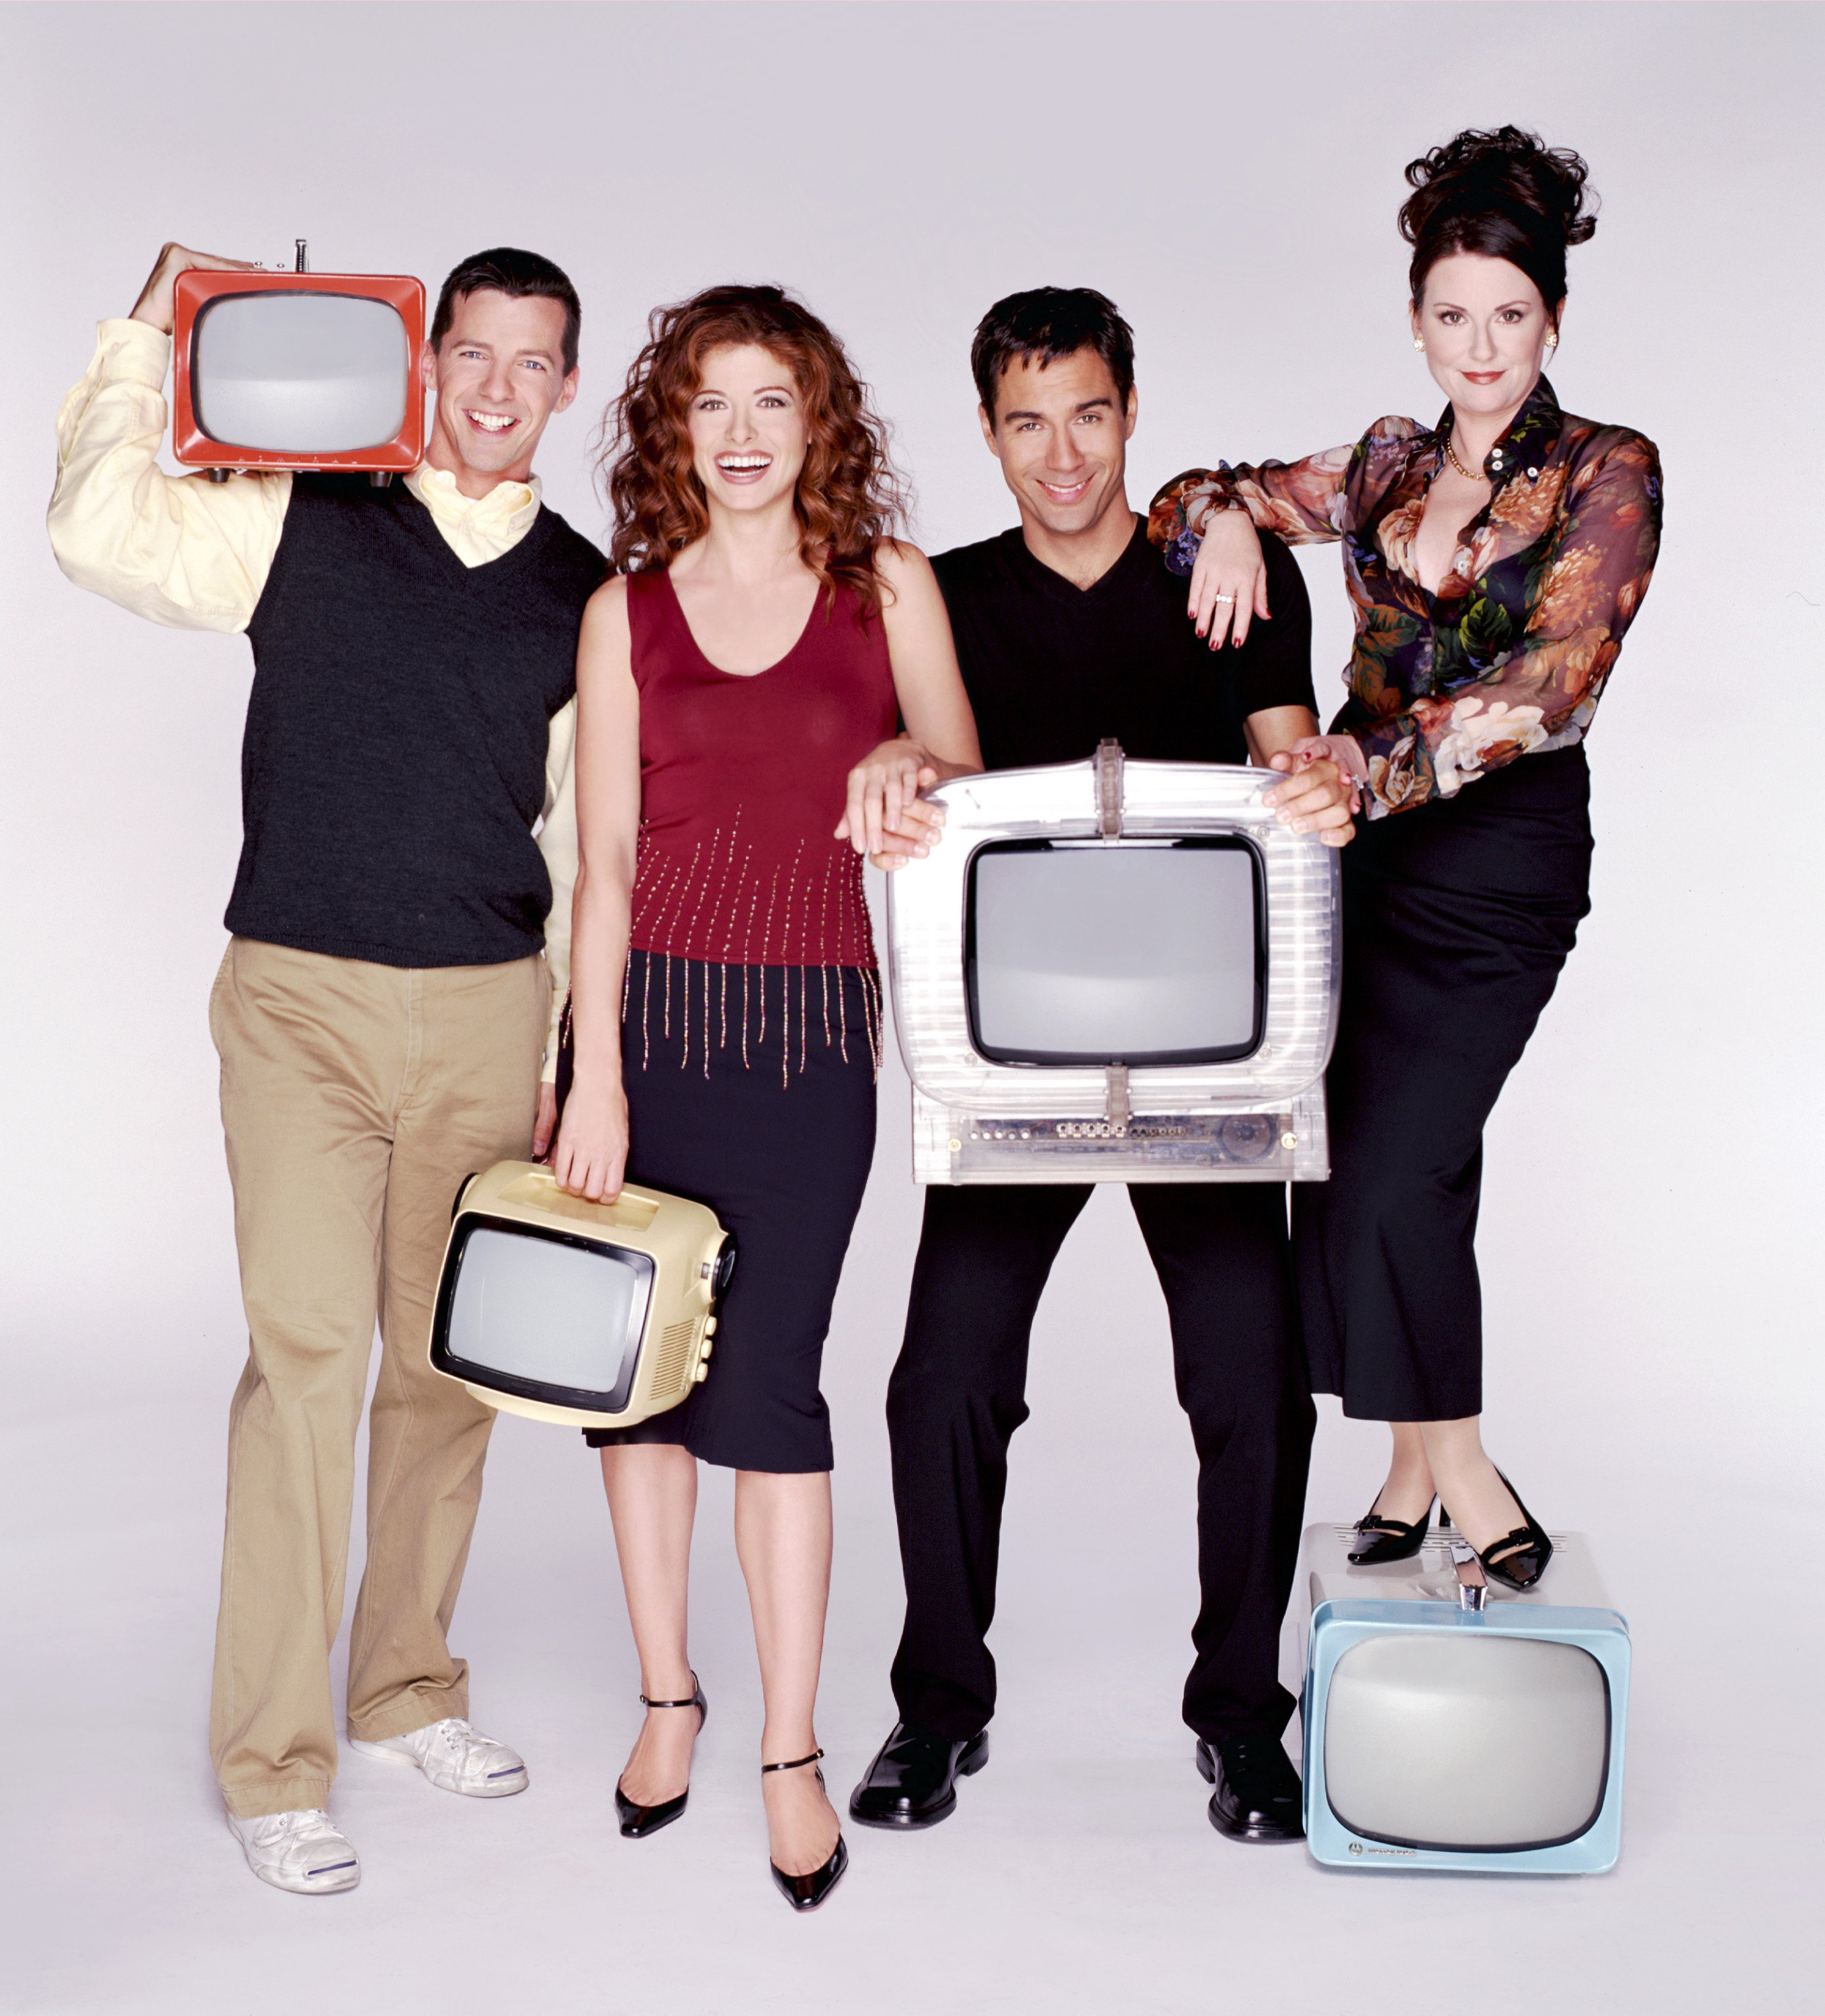 'Will & Grace' Getty Images